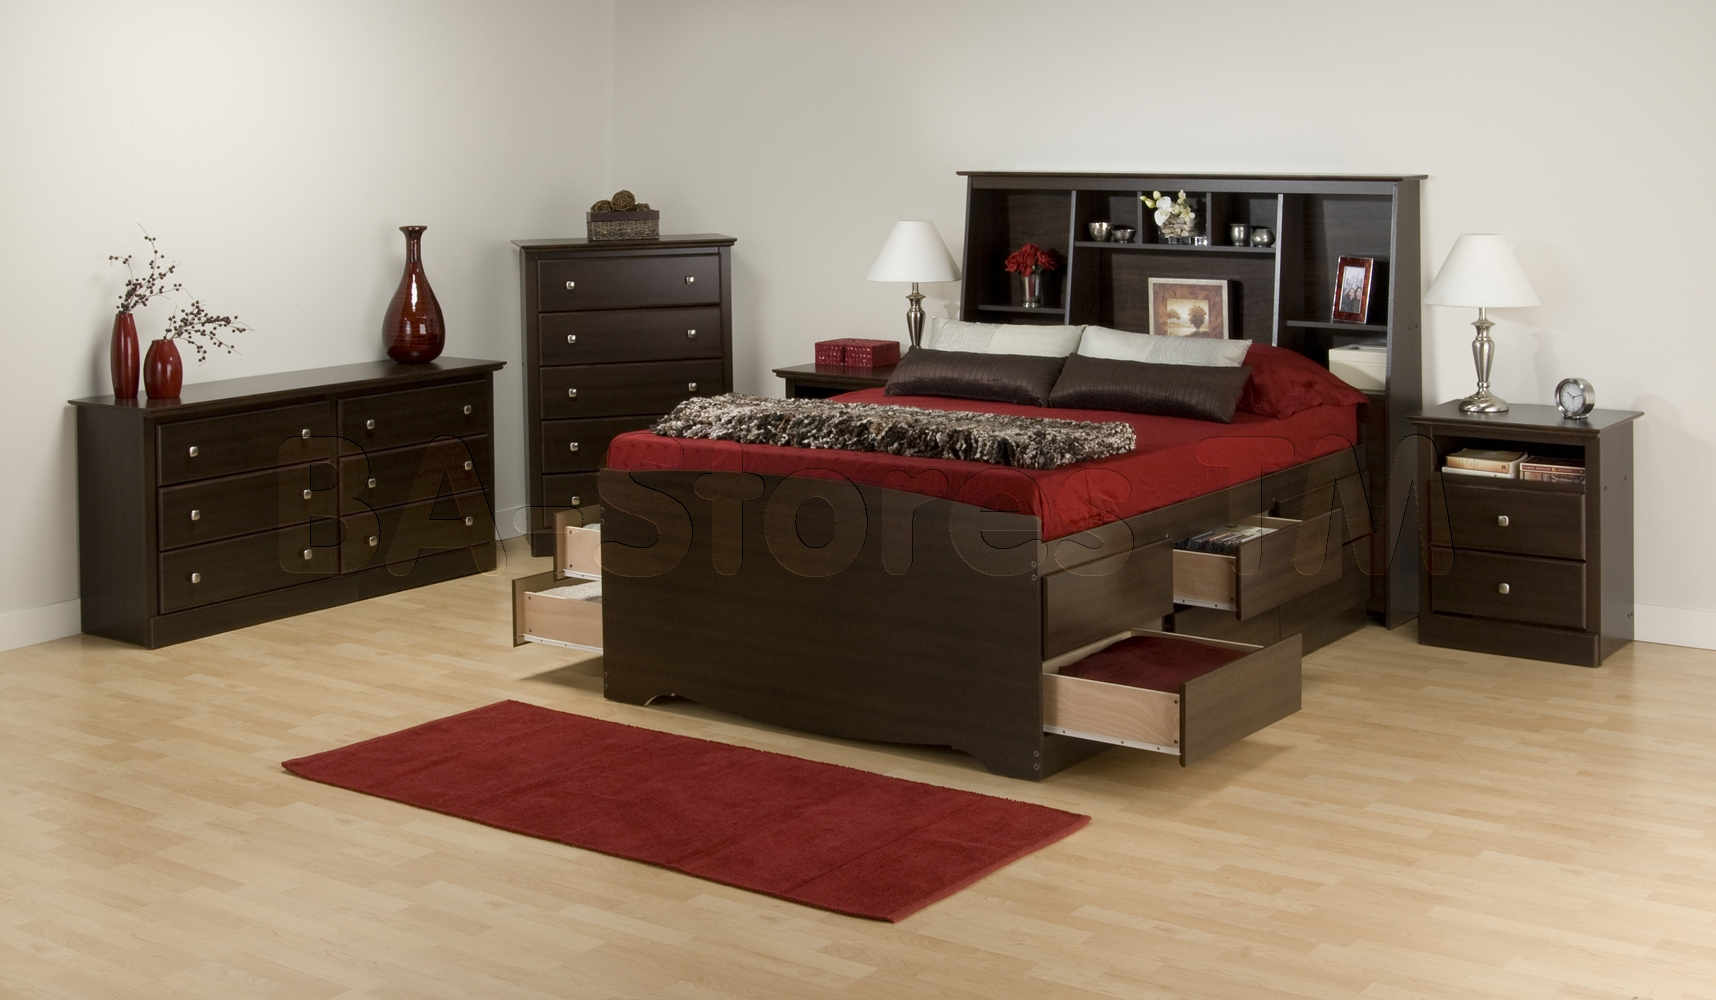 Tall Double Bed Frame